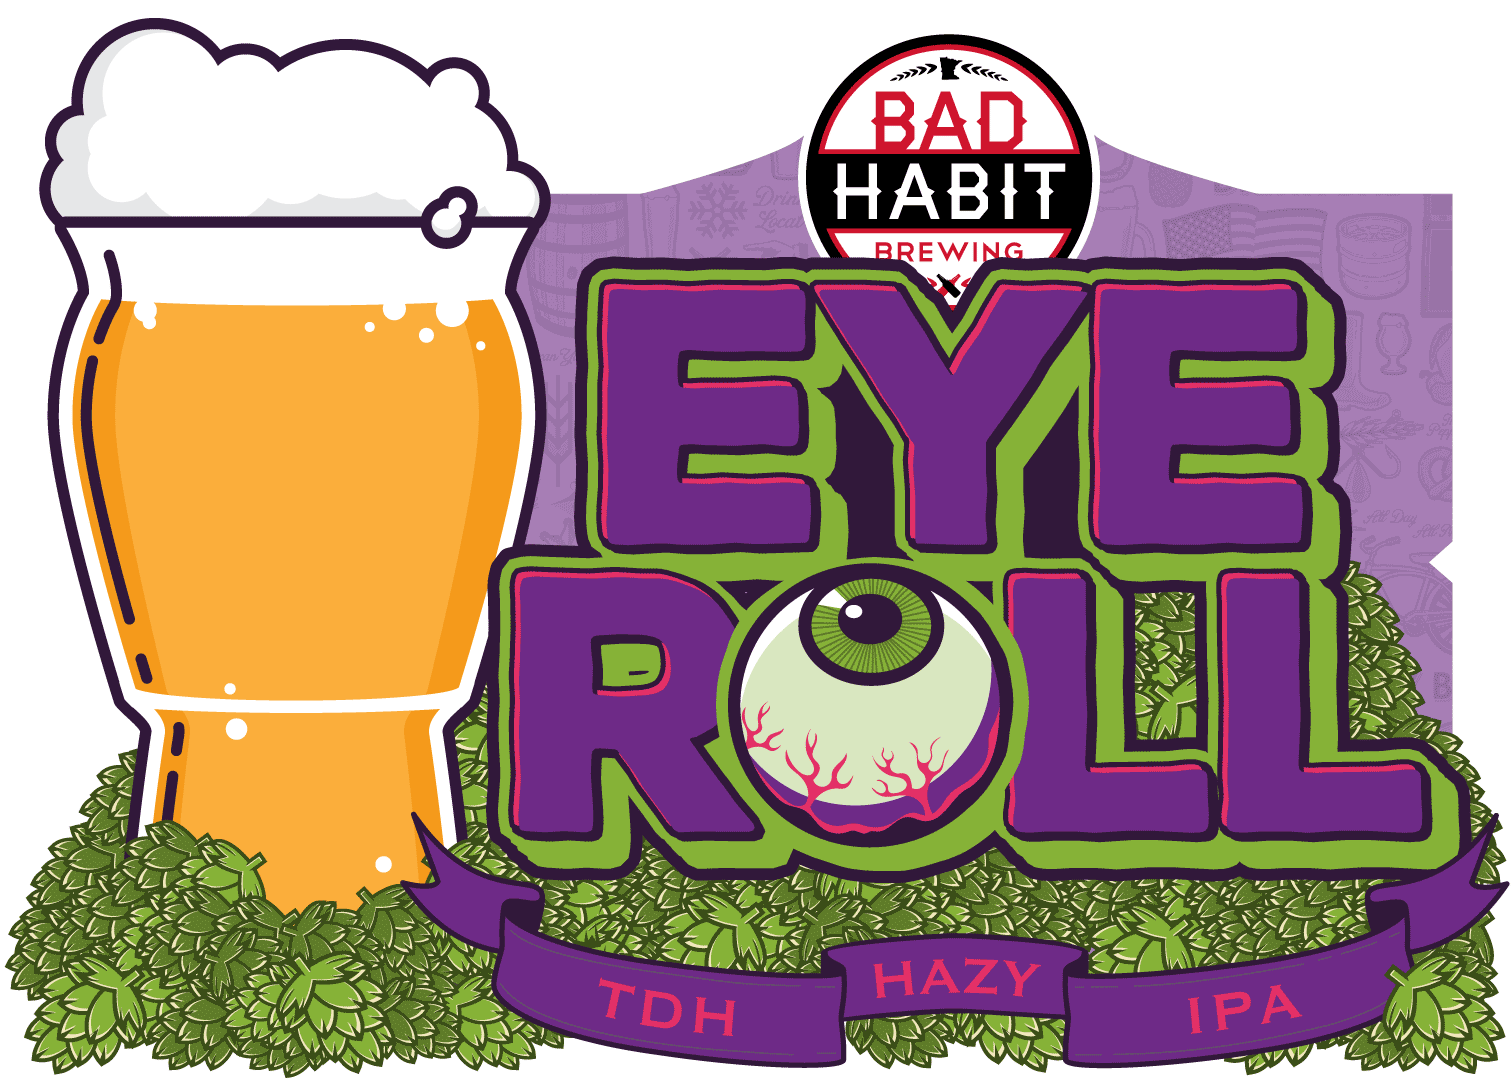 EYEROLL - Triple Dry Hopped Hazy IPA | 6.7% ABVWe know what you are thinking, another IPA? Well, this one is triple dry hopped and hazy! Don't roll your eyes at us until you've tried it.TAPPING SUNDAY, JULY 21